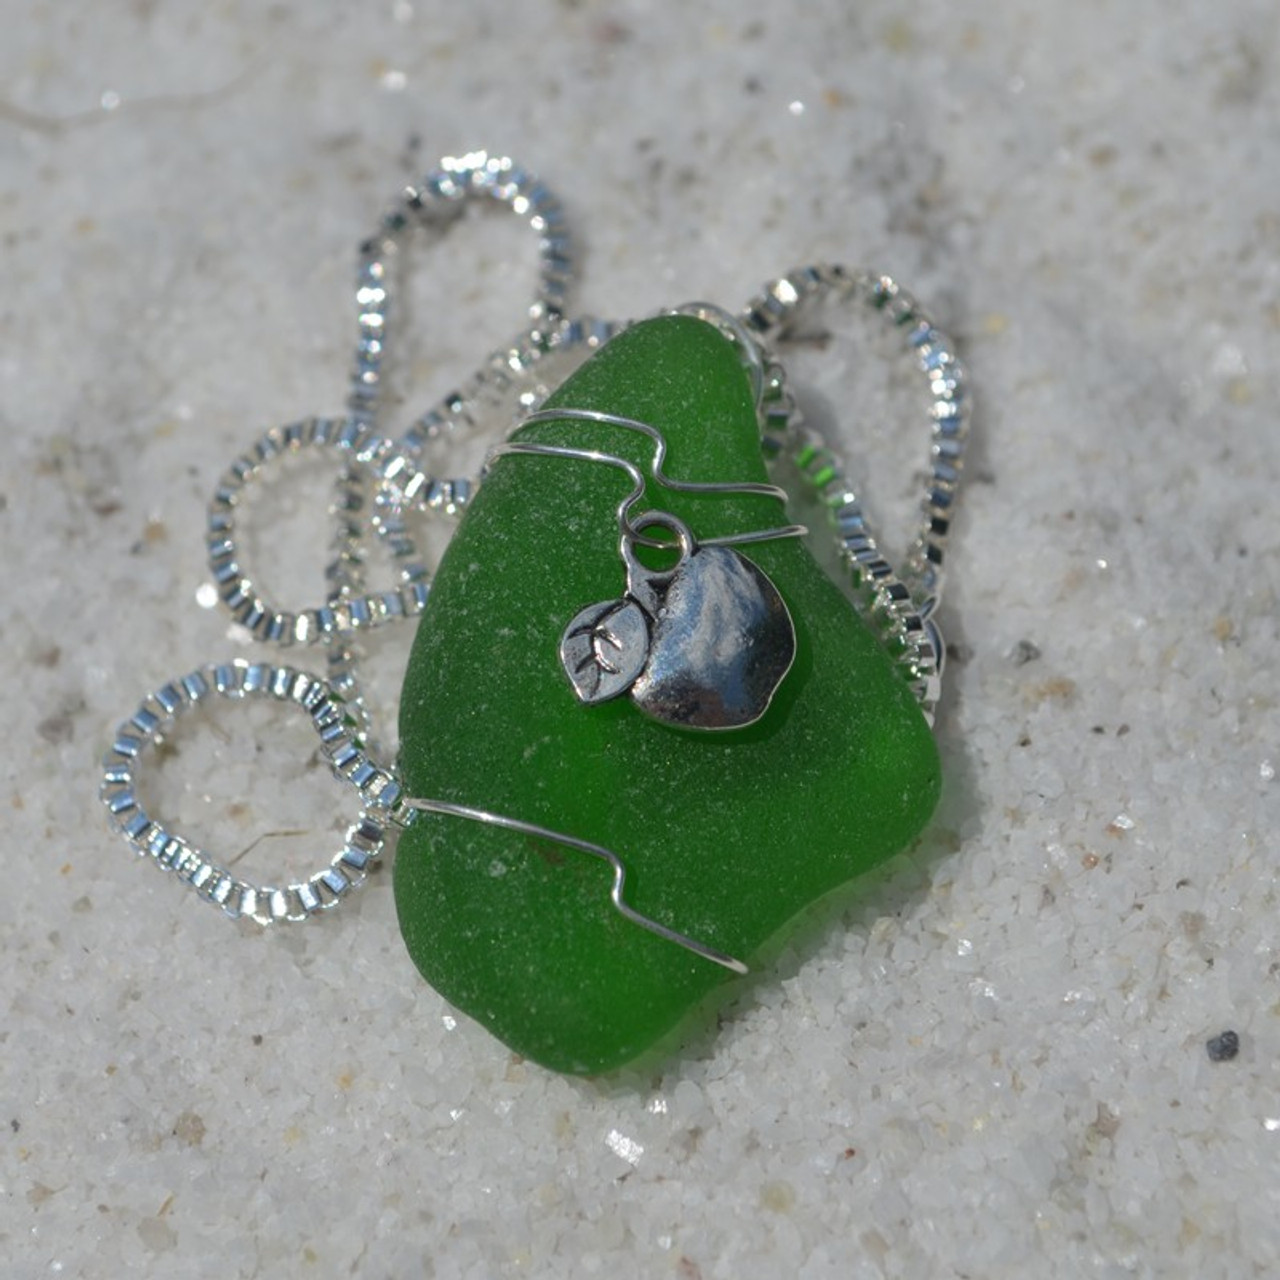 Pendant and Necklace for a Teacher